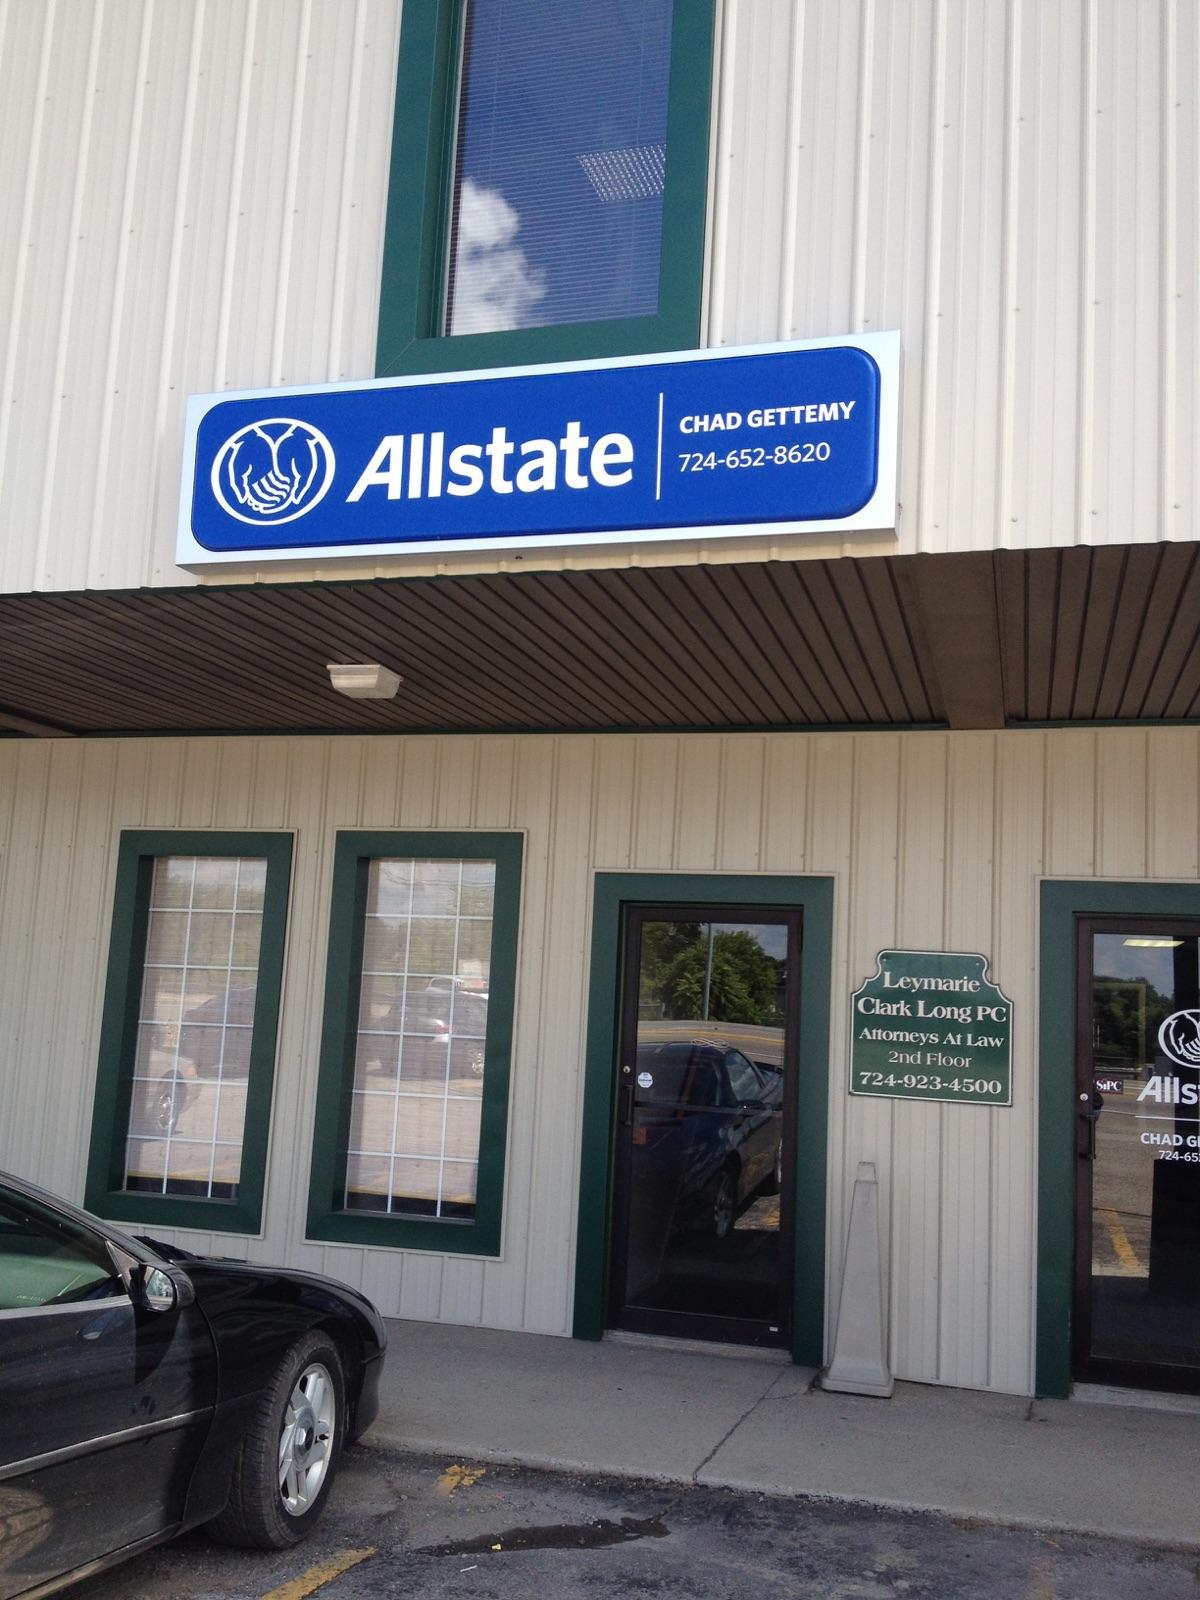 Chad J Gettemy: Allstate Insurance image 1